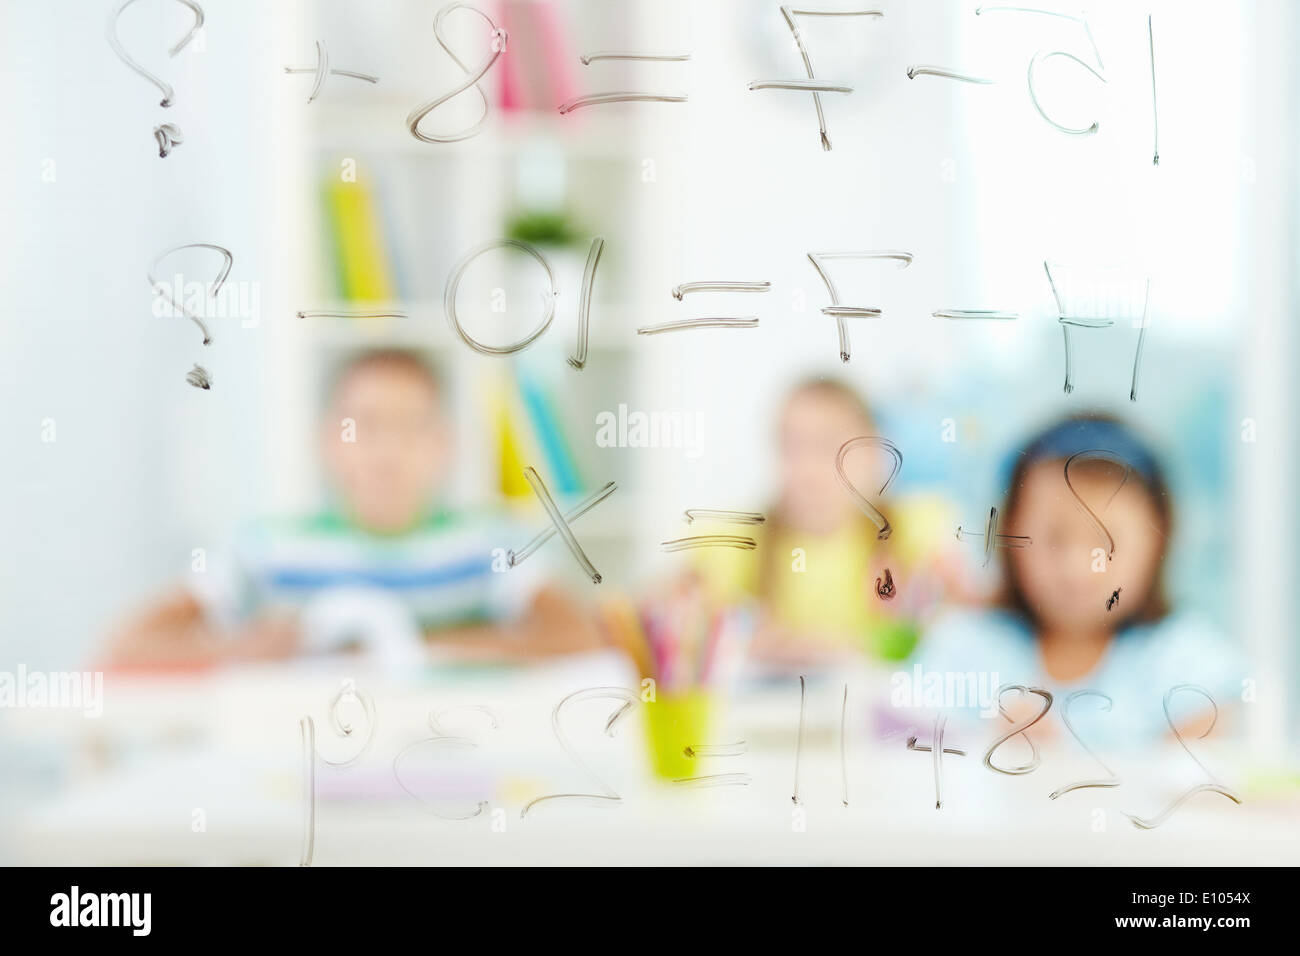 Image of sums written on transparent board with schoolmates on background - Stock Image